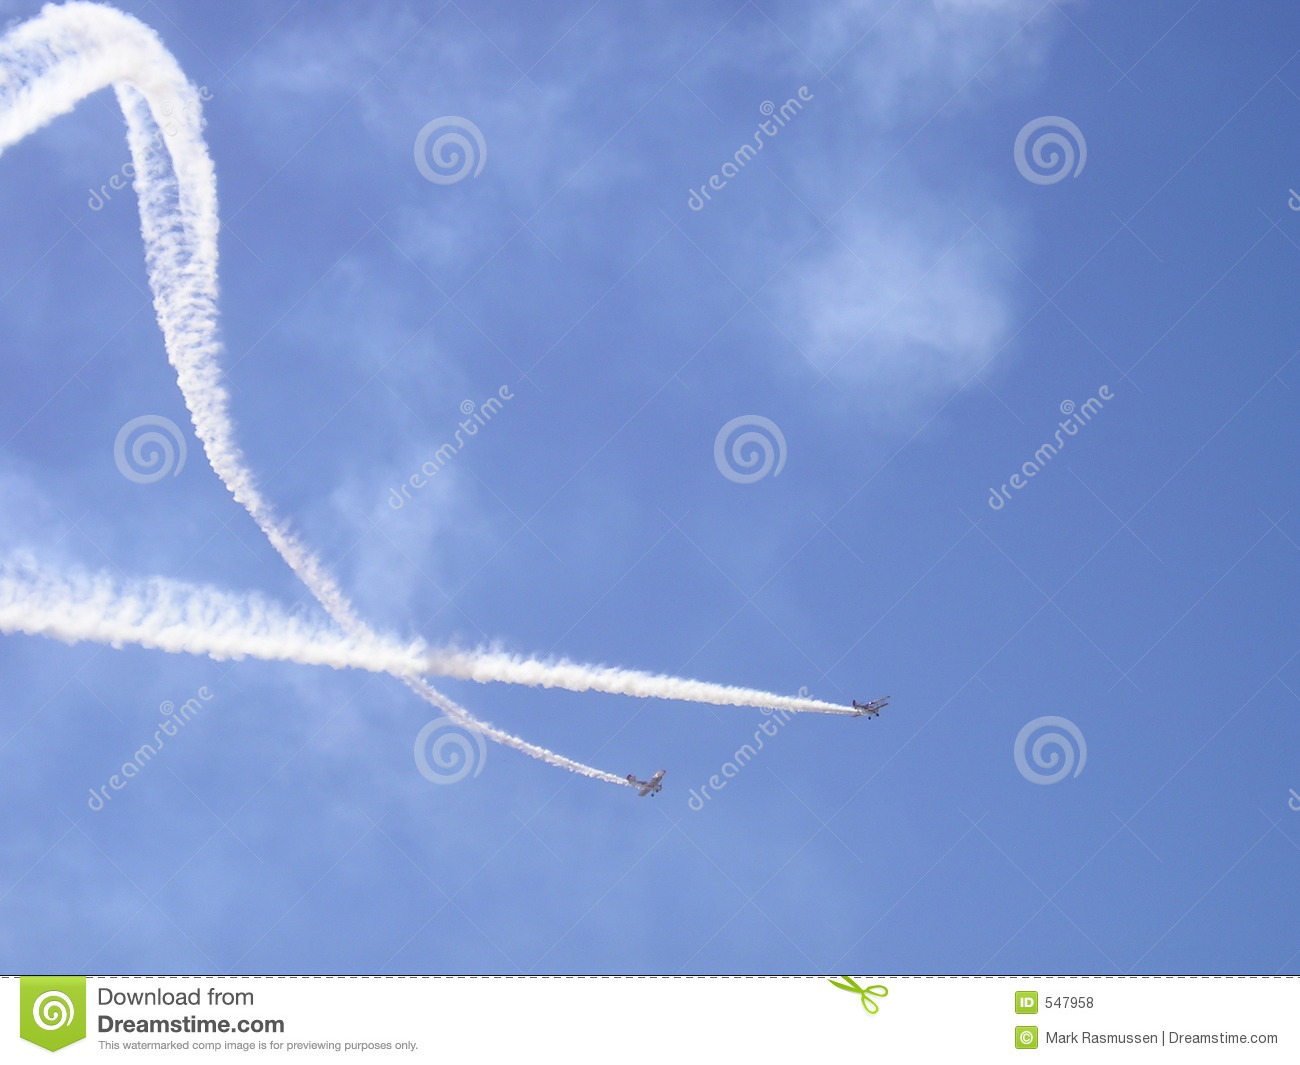 Skywriting Images